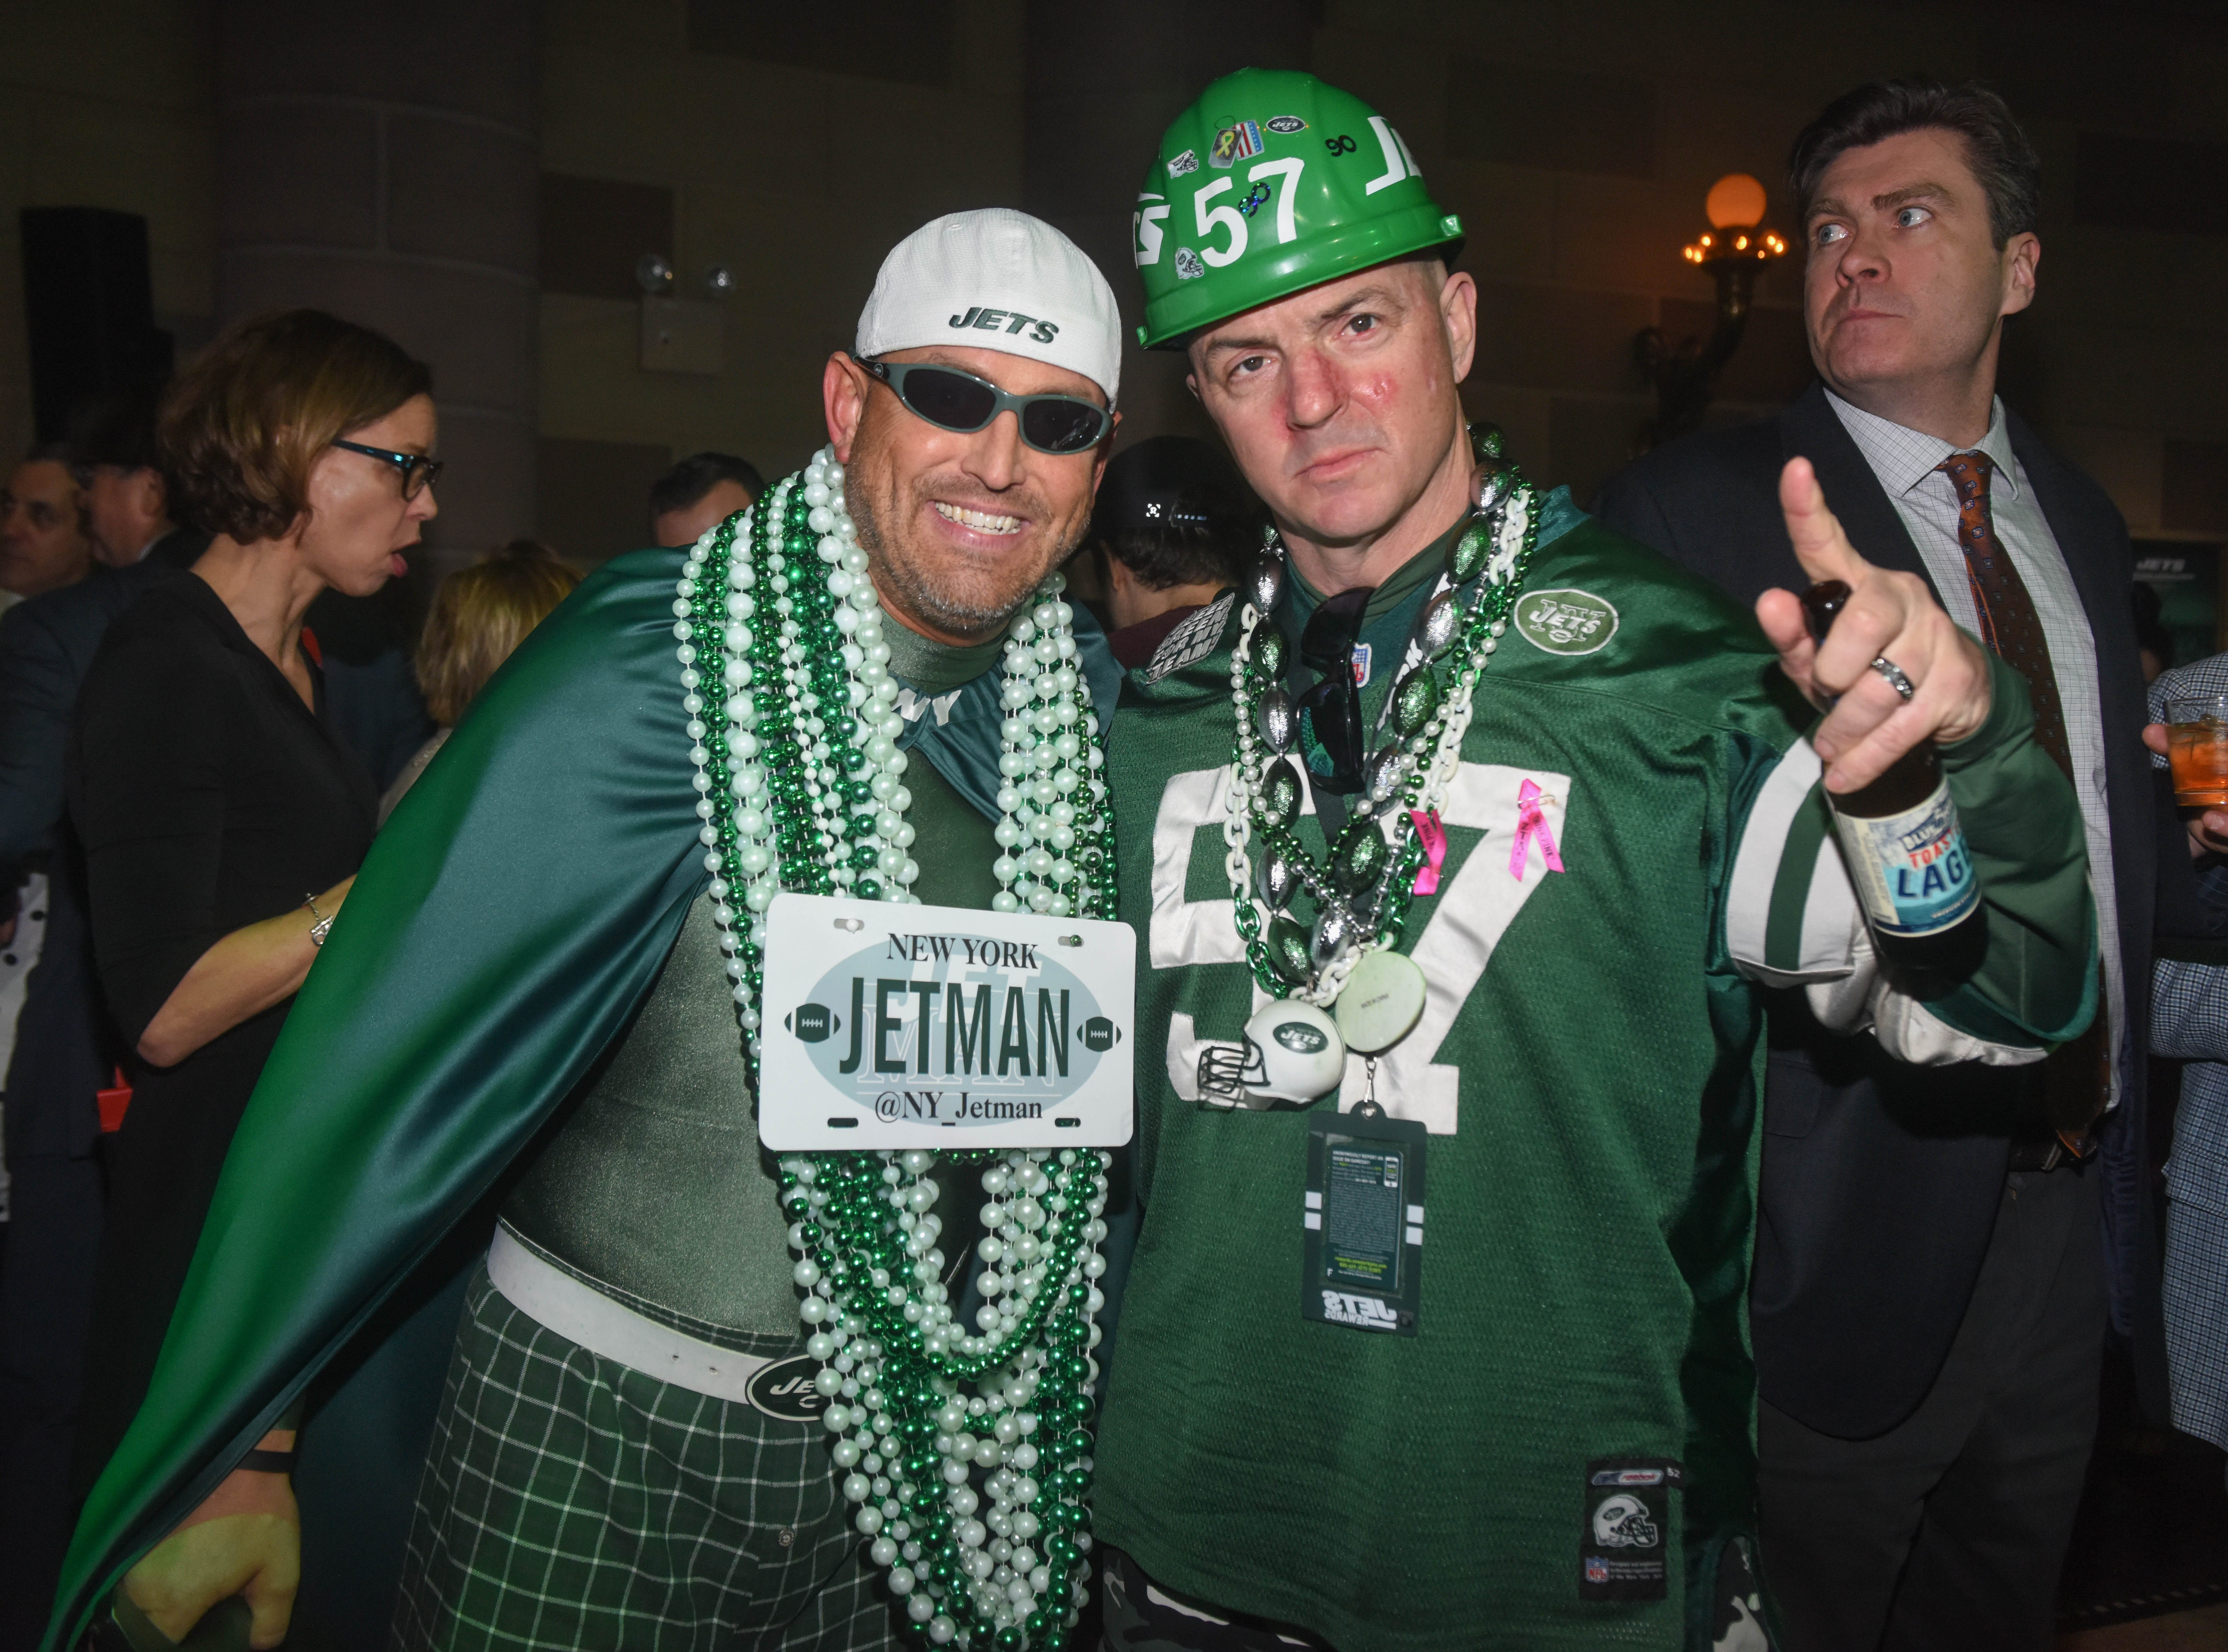 Jet Man and Fireman Ed. The NY Jets unveiled their new football uniforms with an event hosted by JB Smoove at Gotham Hall in New York. 04/05/2019